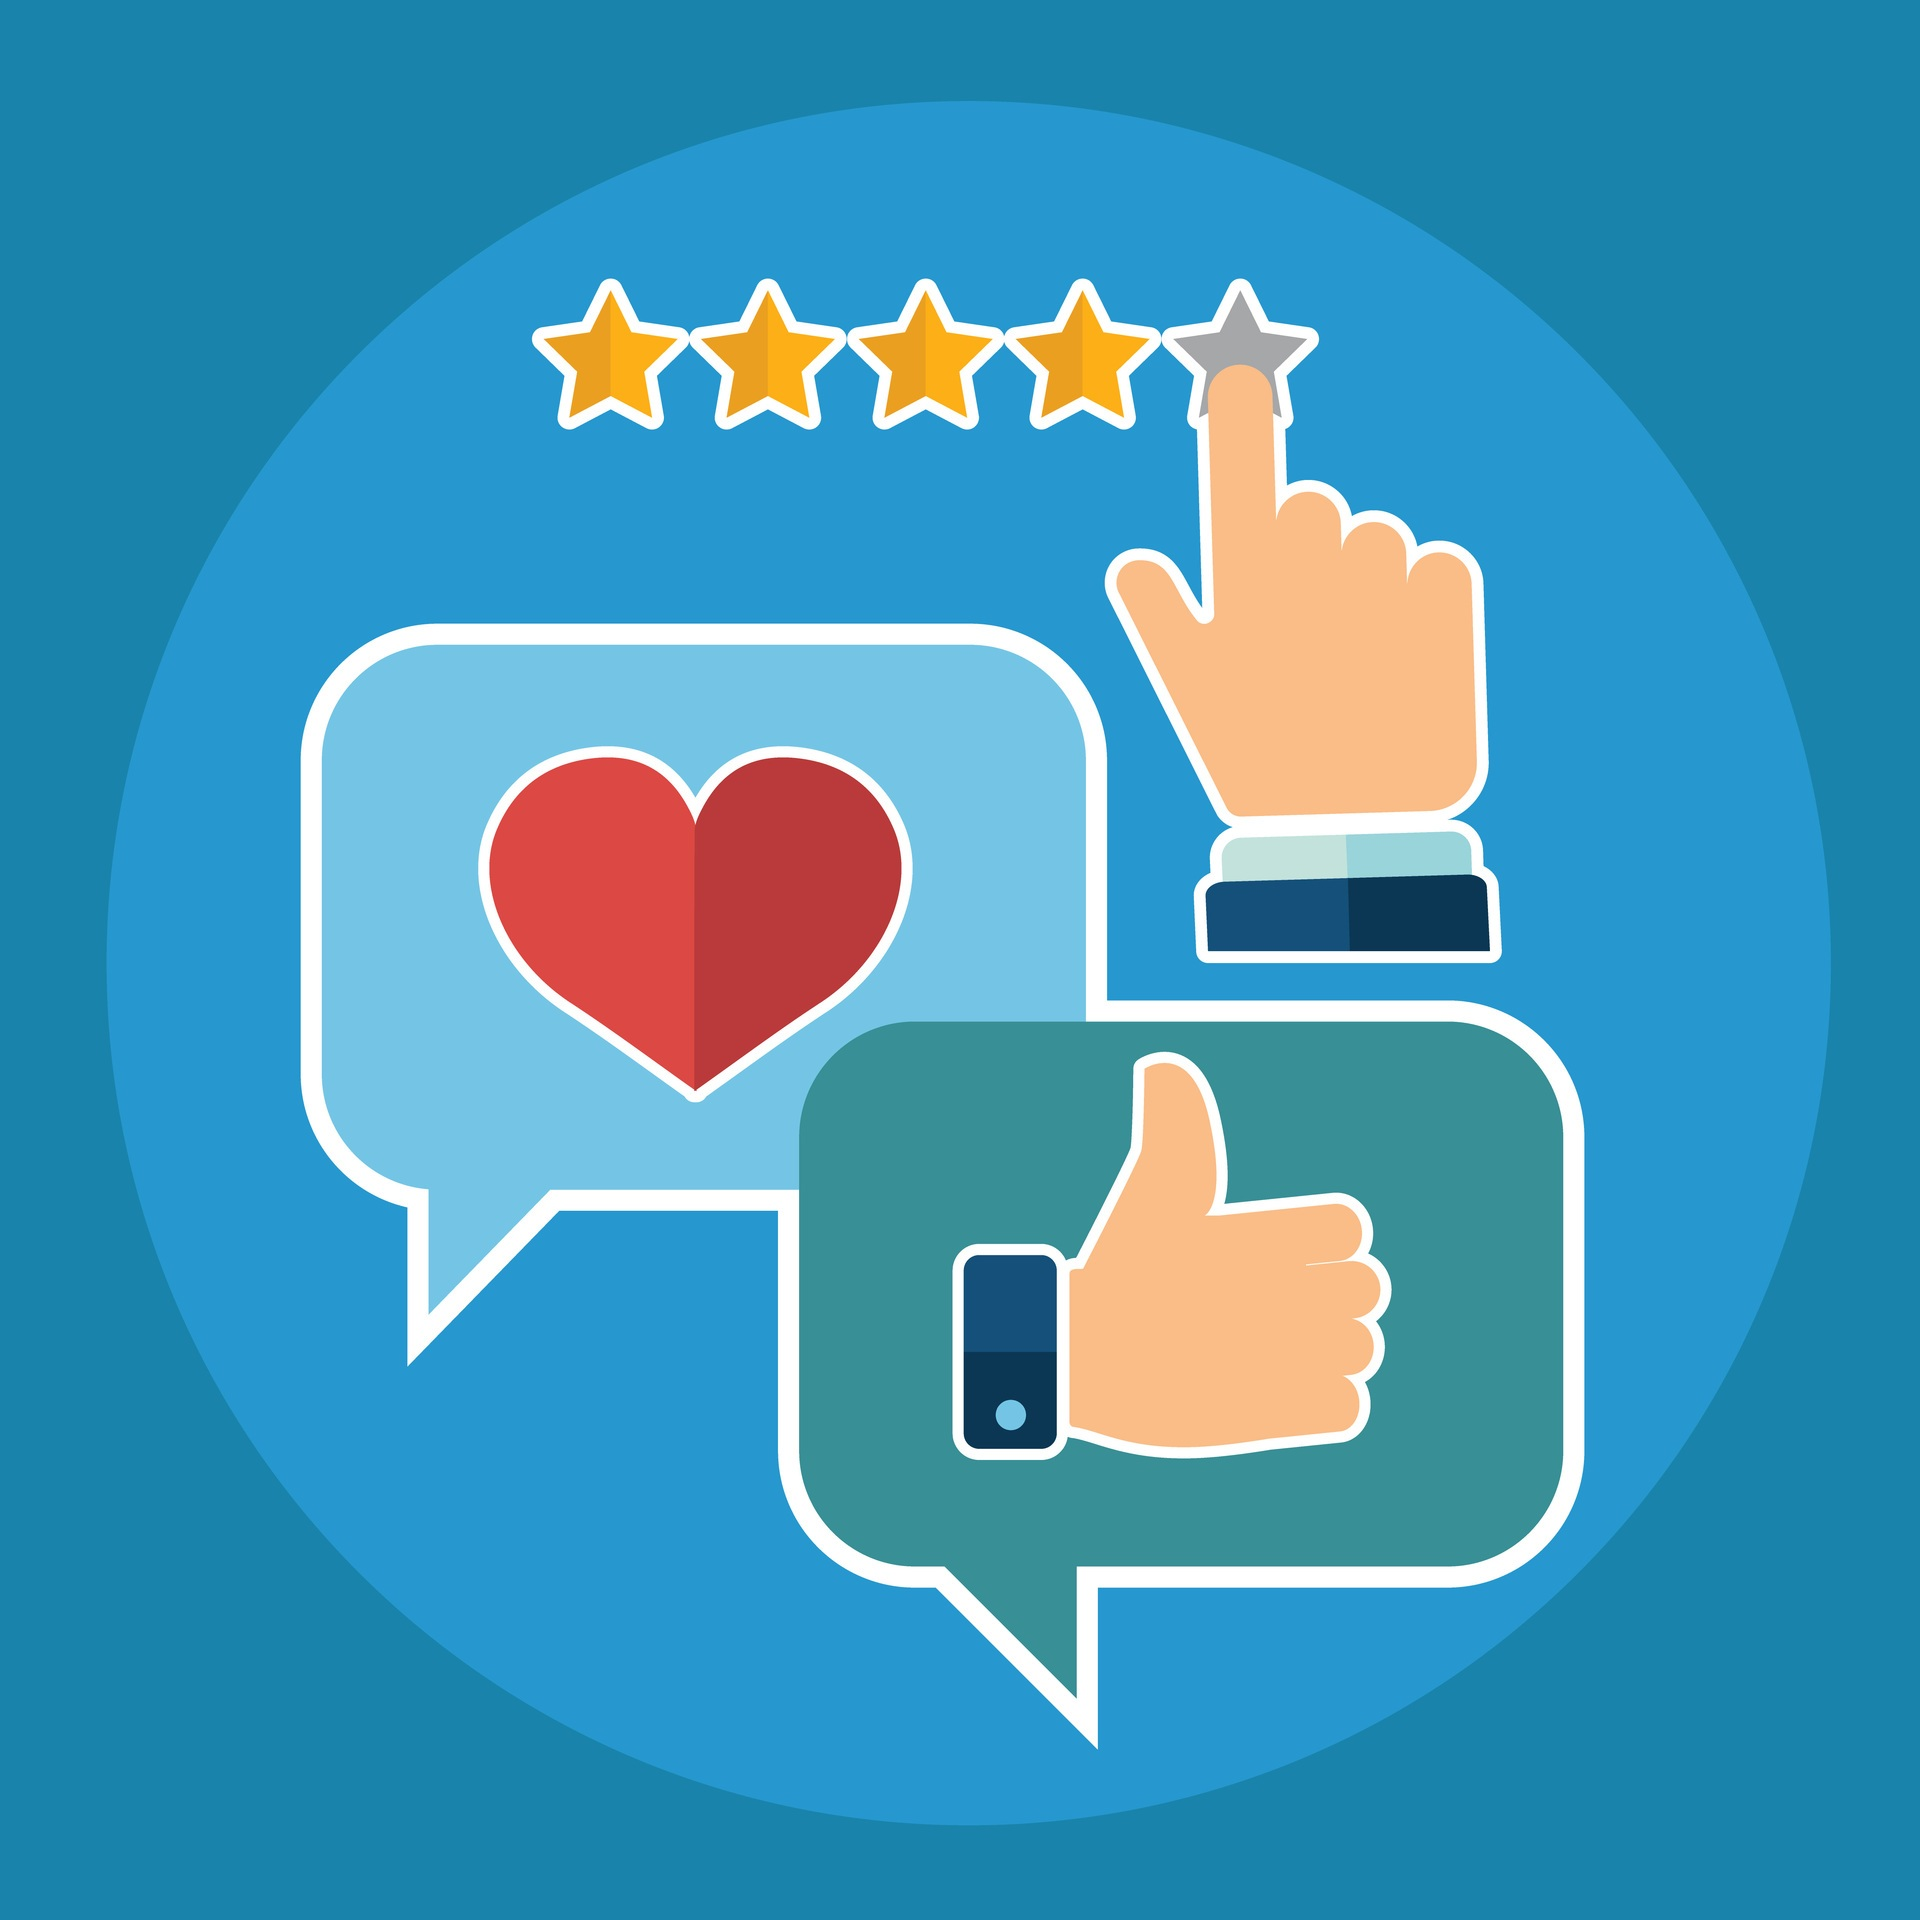 Google Classroom Review: Pros And Cons Of Using Google.